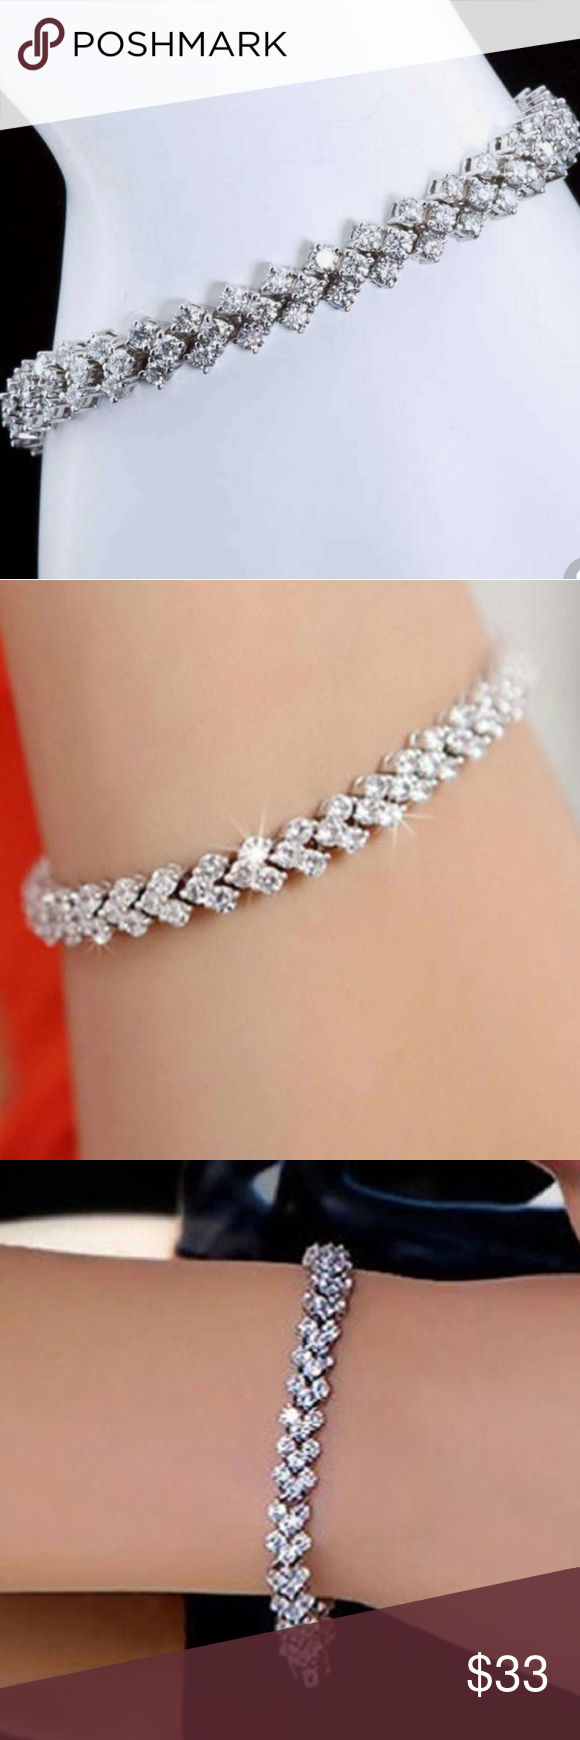 1 4 Ct T W Diamond Tennis Bracelet Adorn Her Wrist In The Lavish Display Of This Gleaming 1 4 Ct T W D Tennis Bracelet Diamond Beautiful Bracelet Bracelets